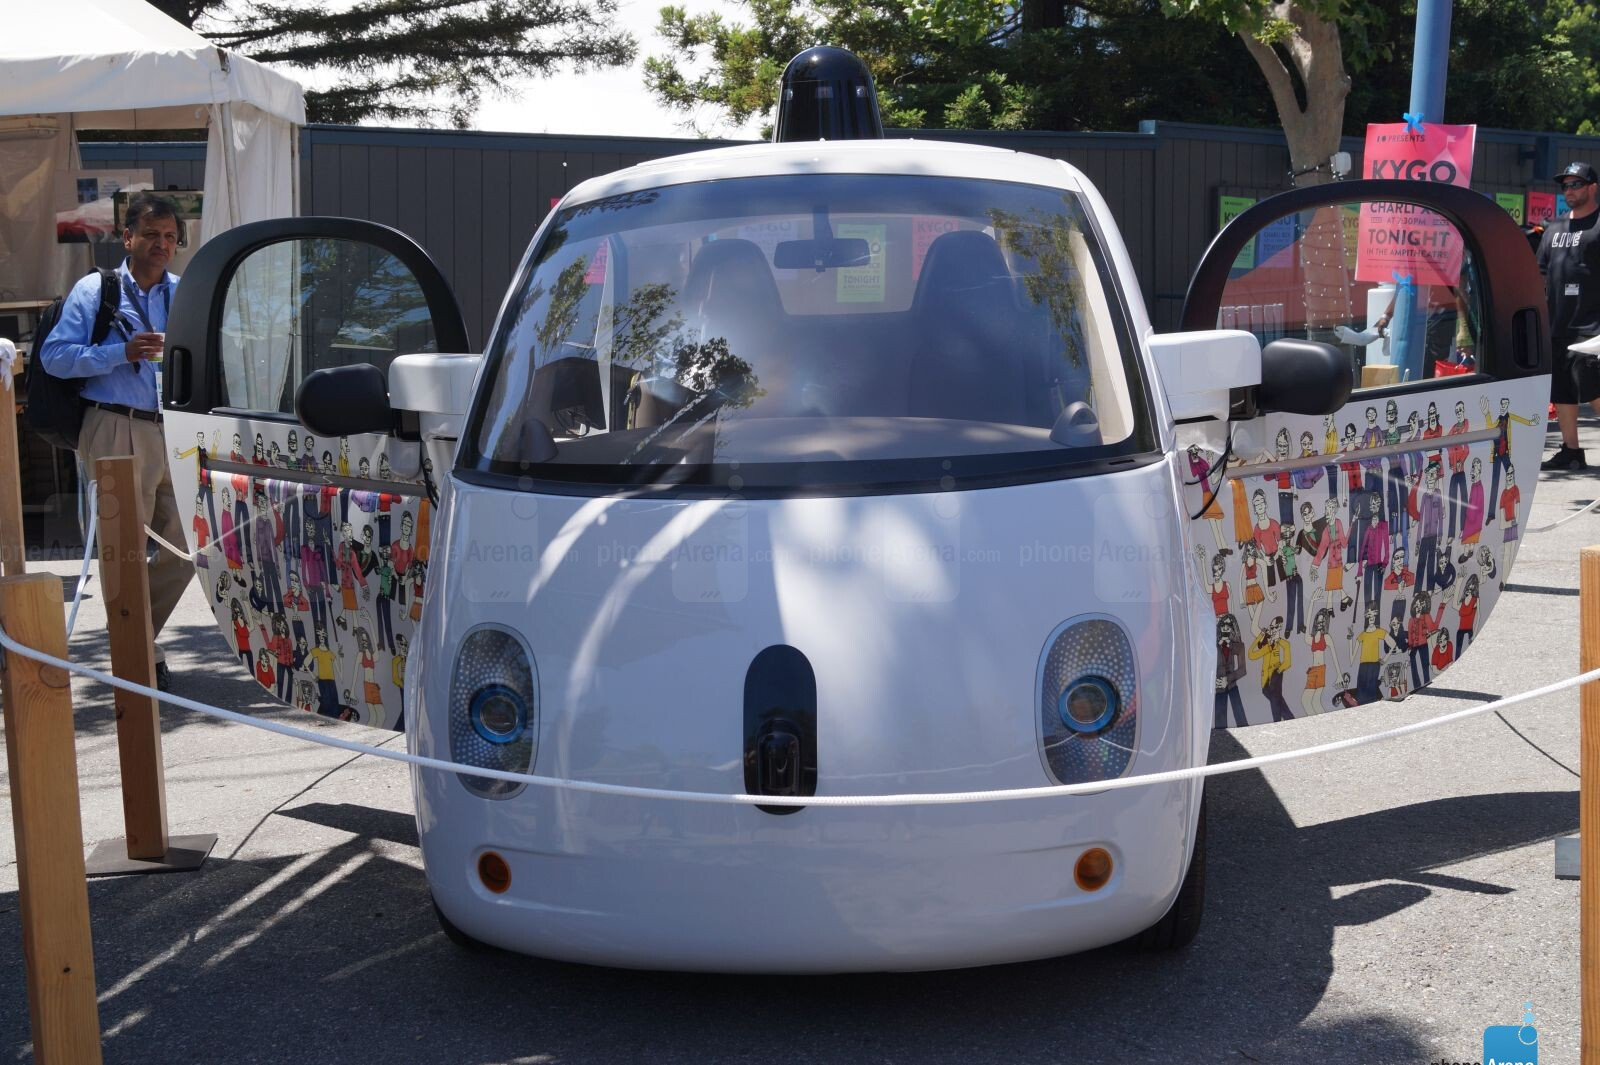 Here's a closer look at Google's self-driving car